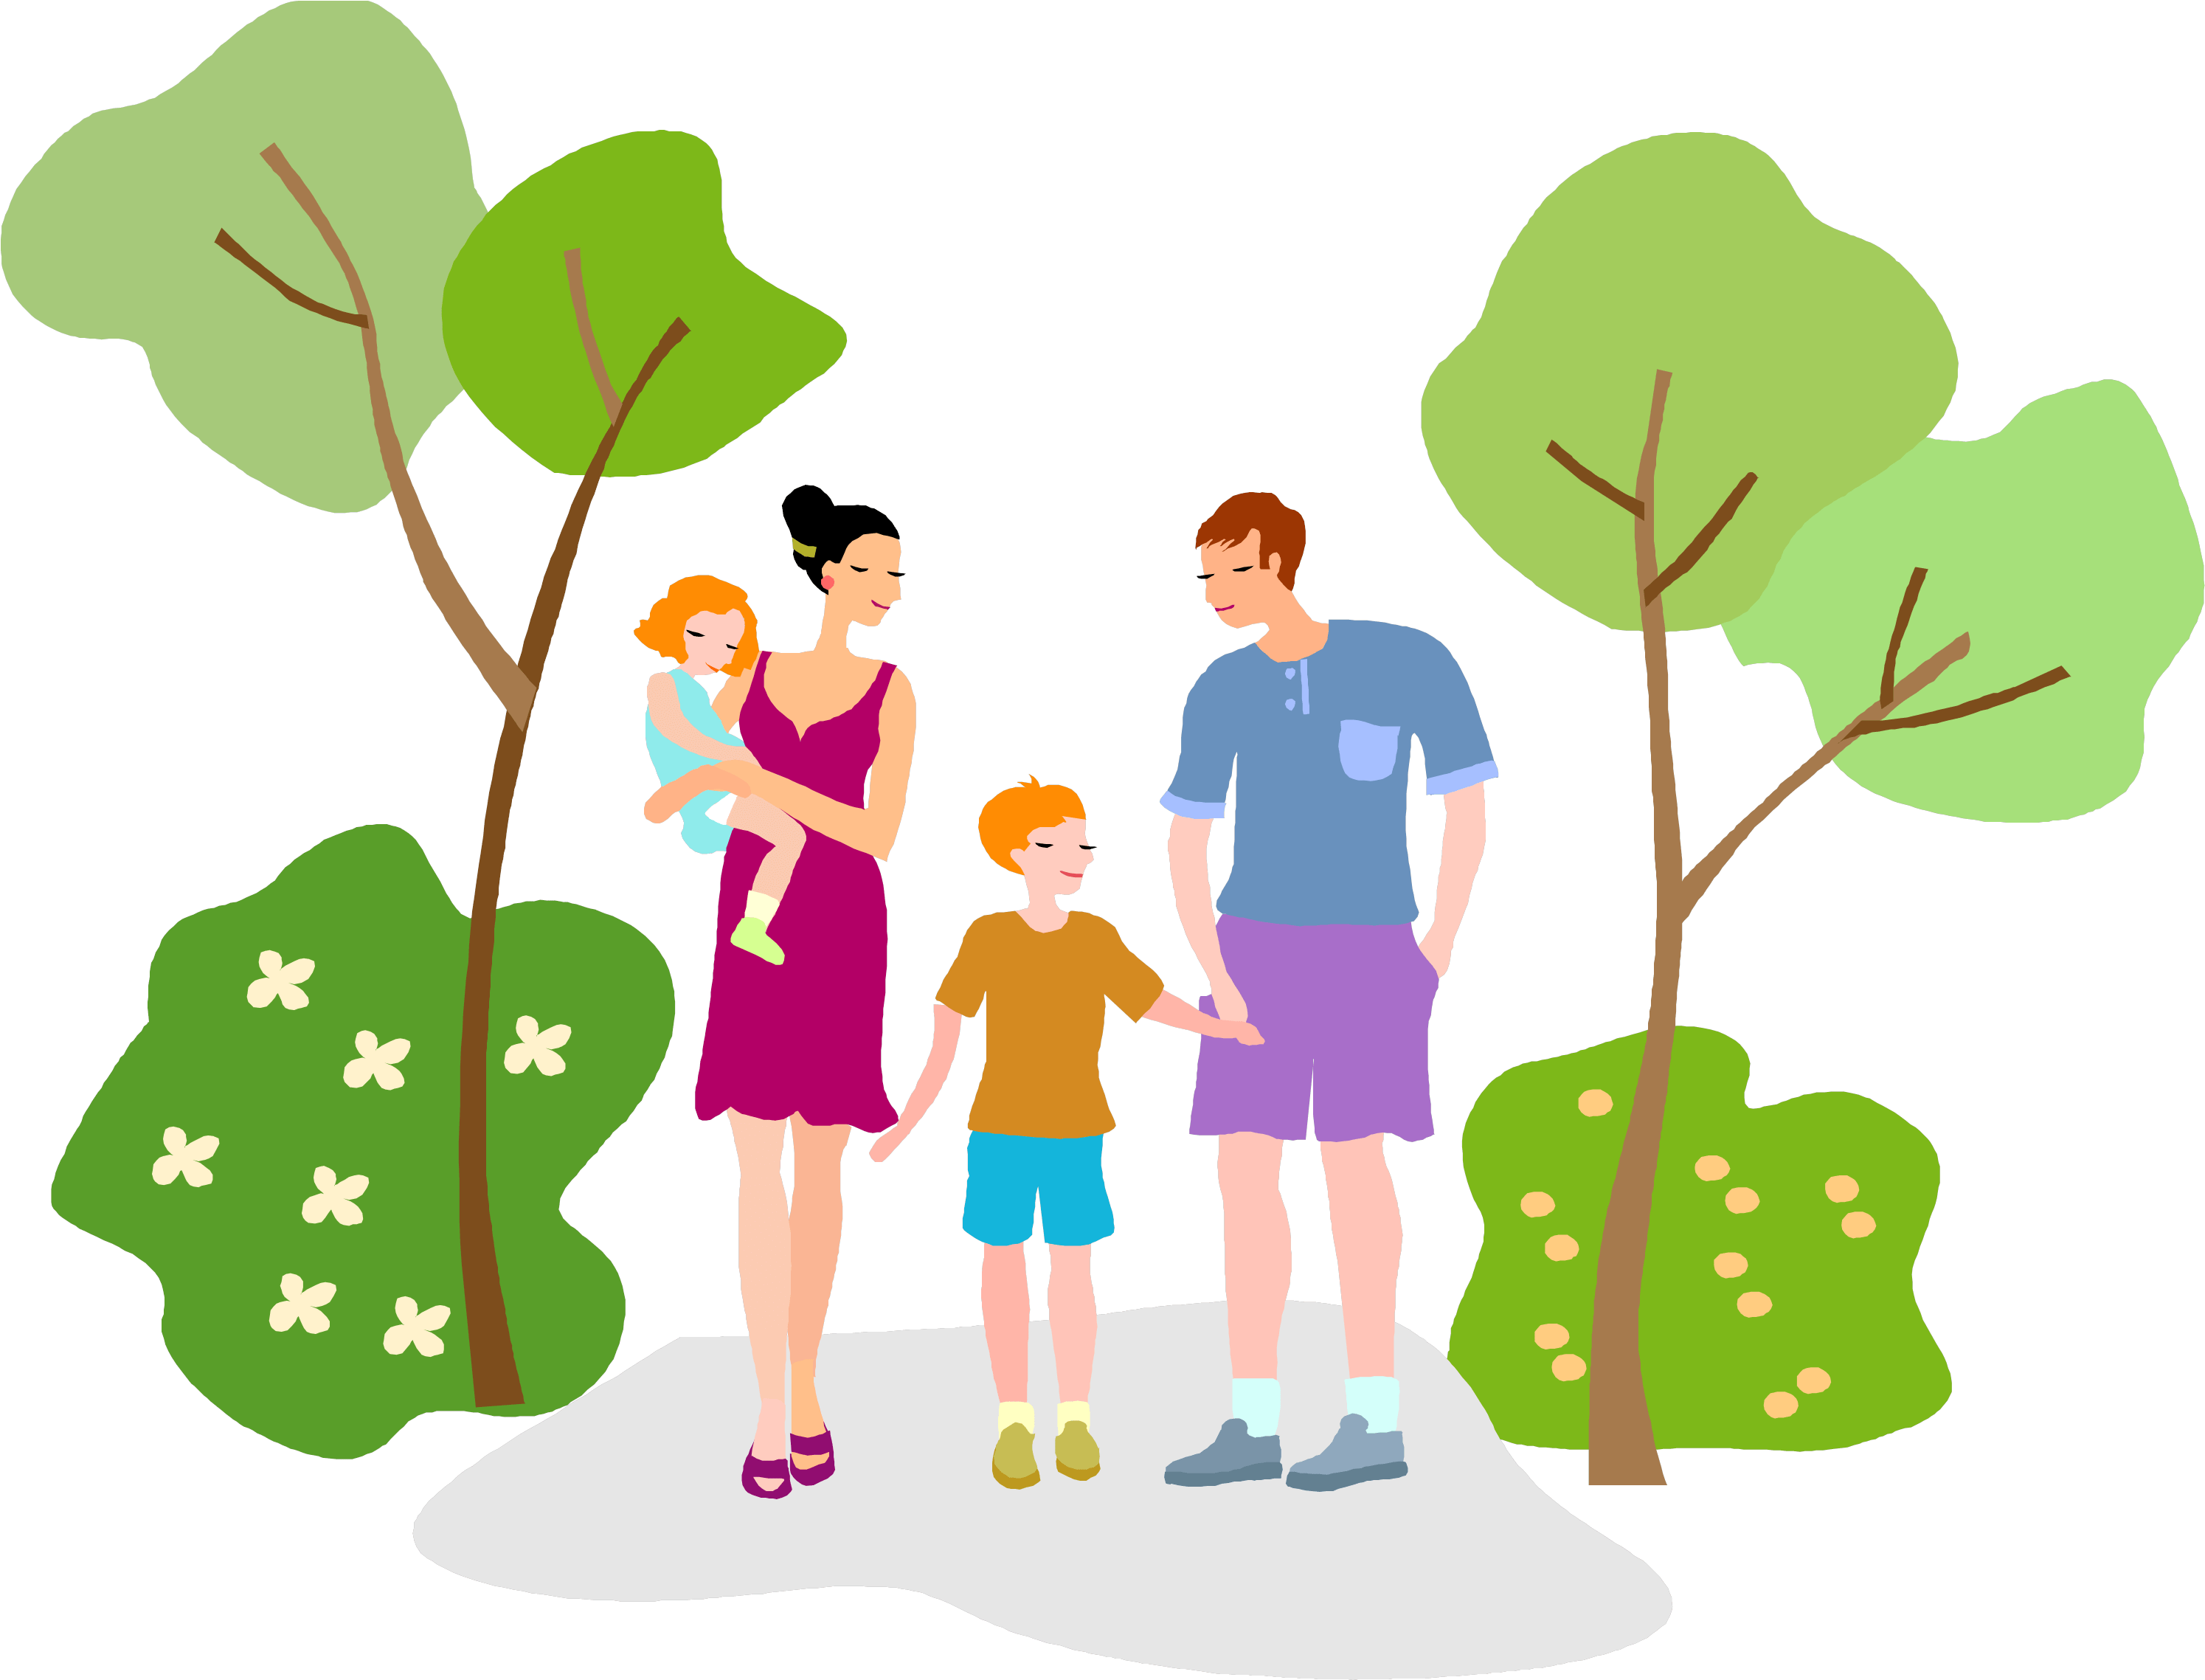 Hiking clipart nature walk. Download walking family png